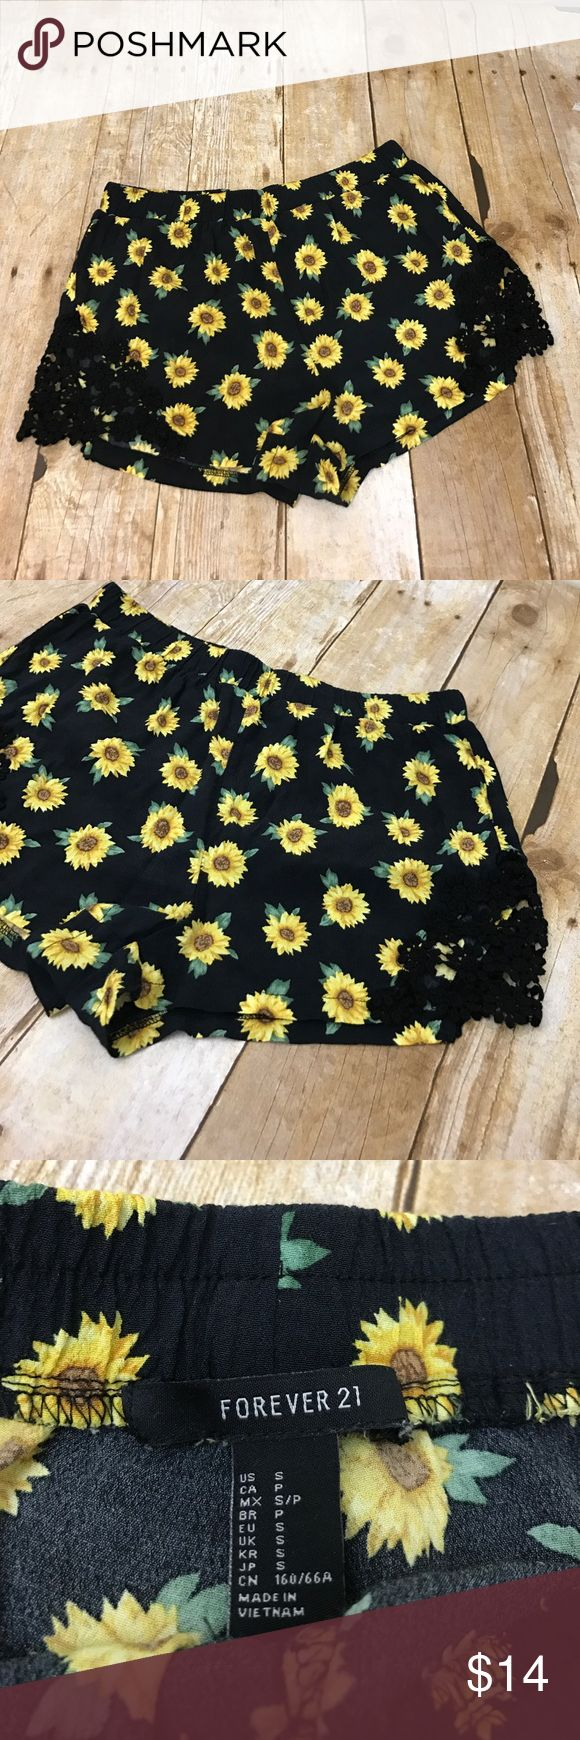 Forever 21 Sunflower Summer Vibes Crochet Shorts S Forever 21 Brand - Size Small - Sunflower Print - Crochet flower detail on thighs - excellent condition - FAST SHIPPING !! Forever 21 Shorts